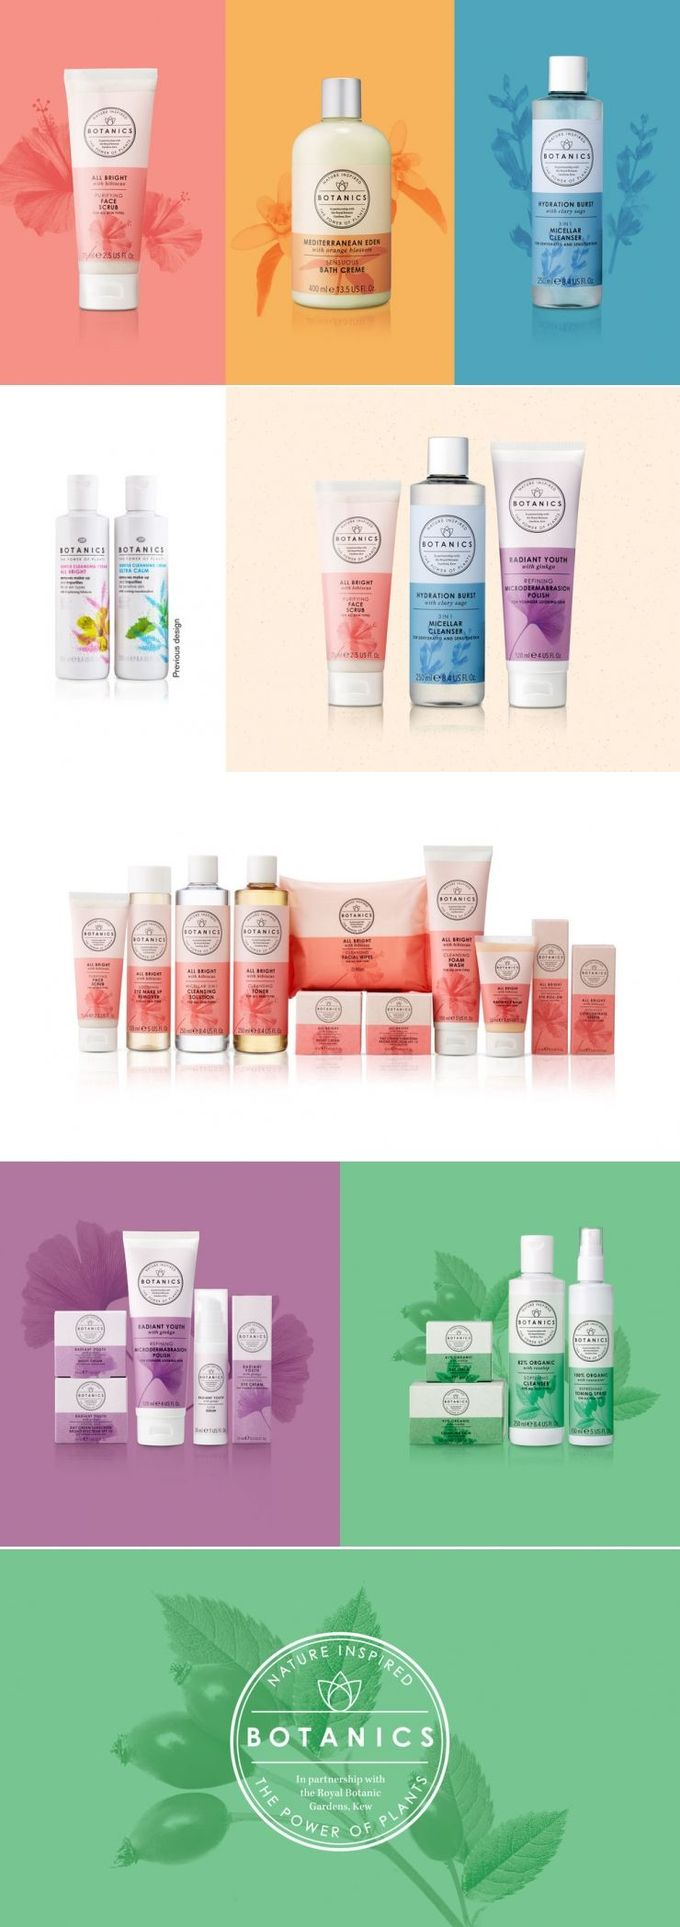 Botanics Skincare Will Help You Indulge With The Power of Plants — The Dieline | Packaging & Branding Design & Innovation News